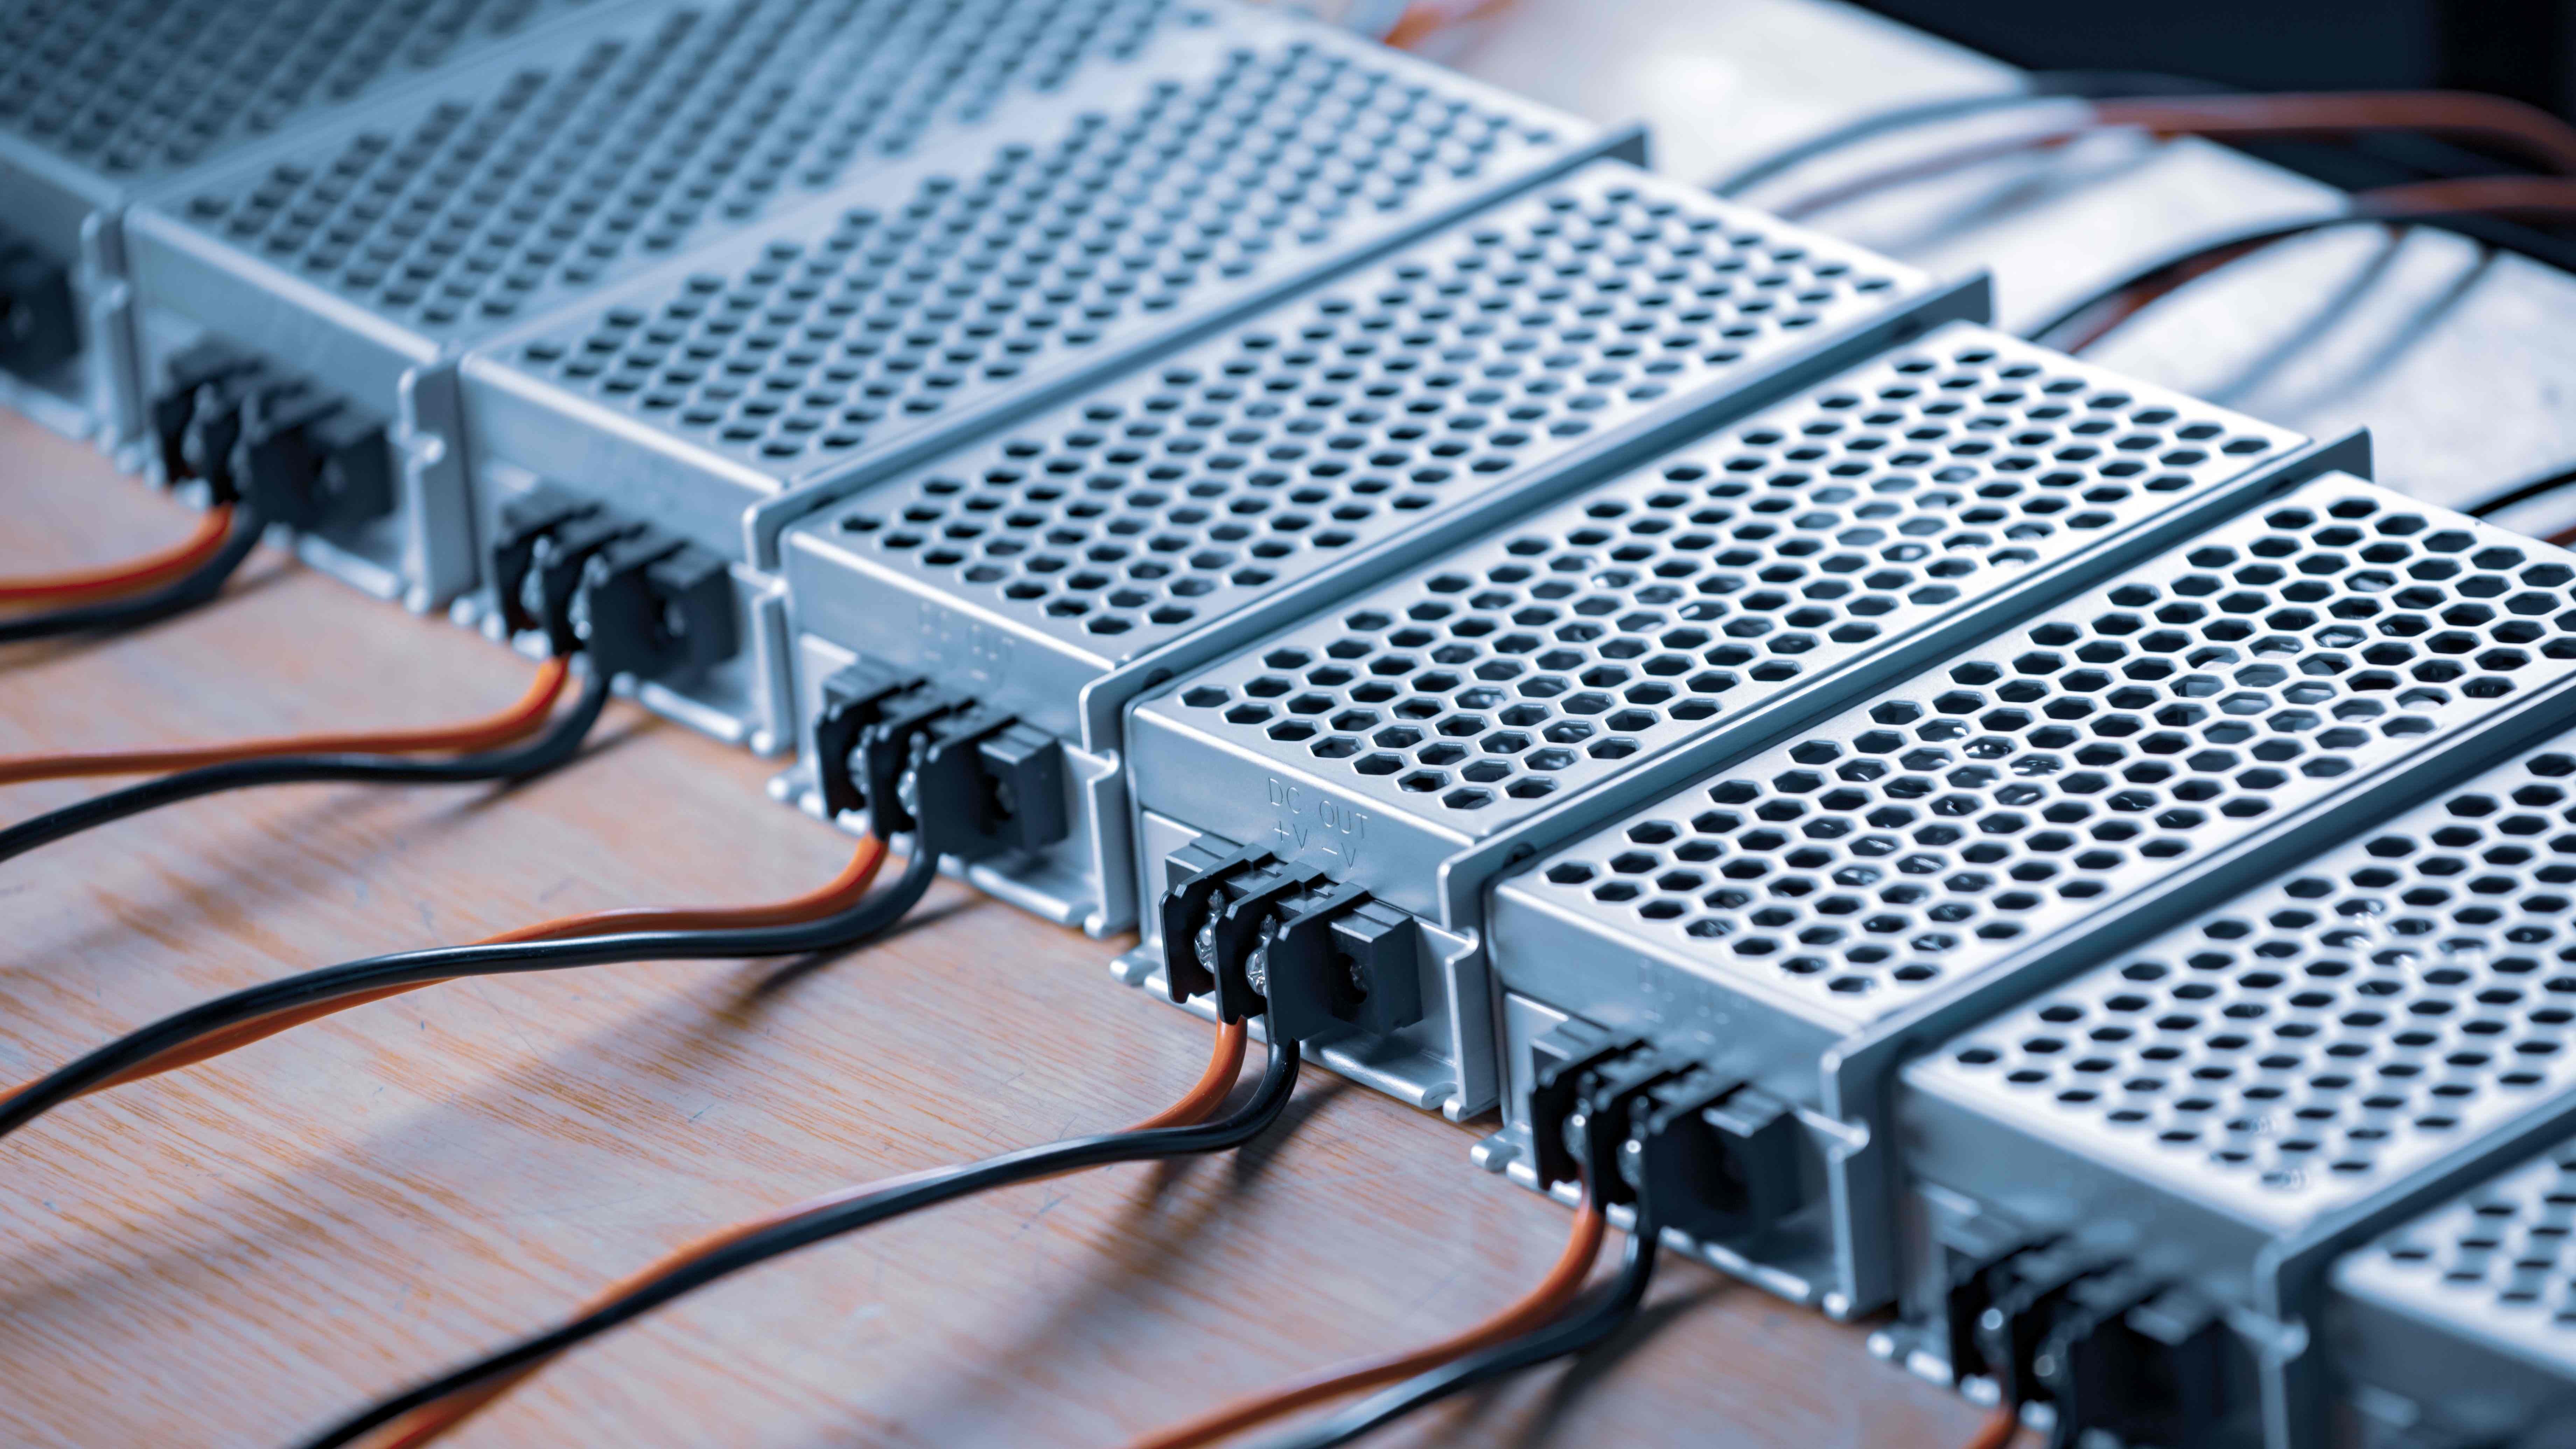 Power supply buying guide